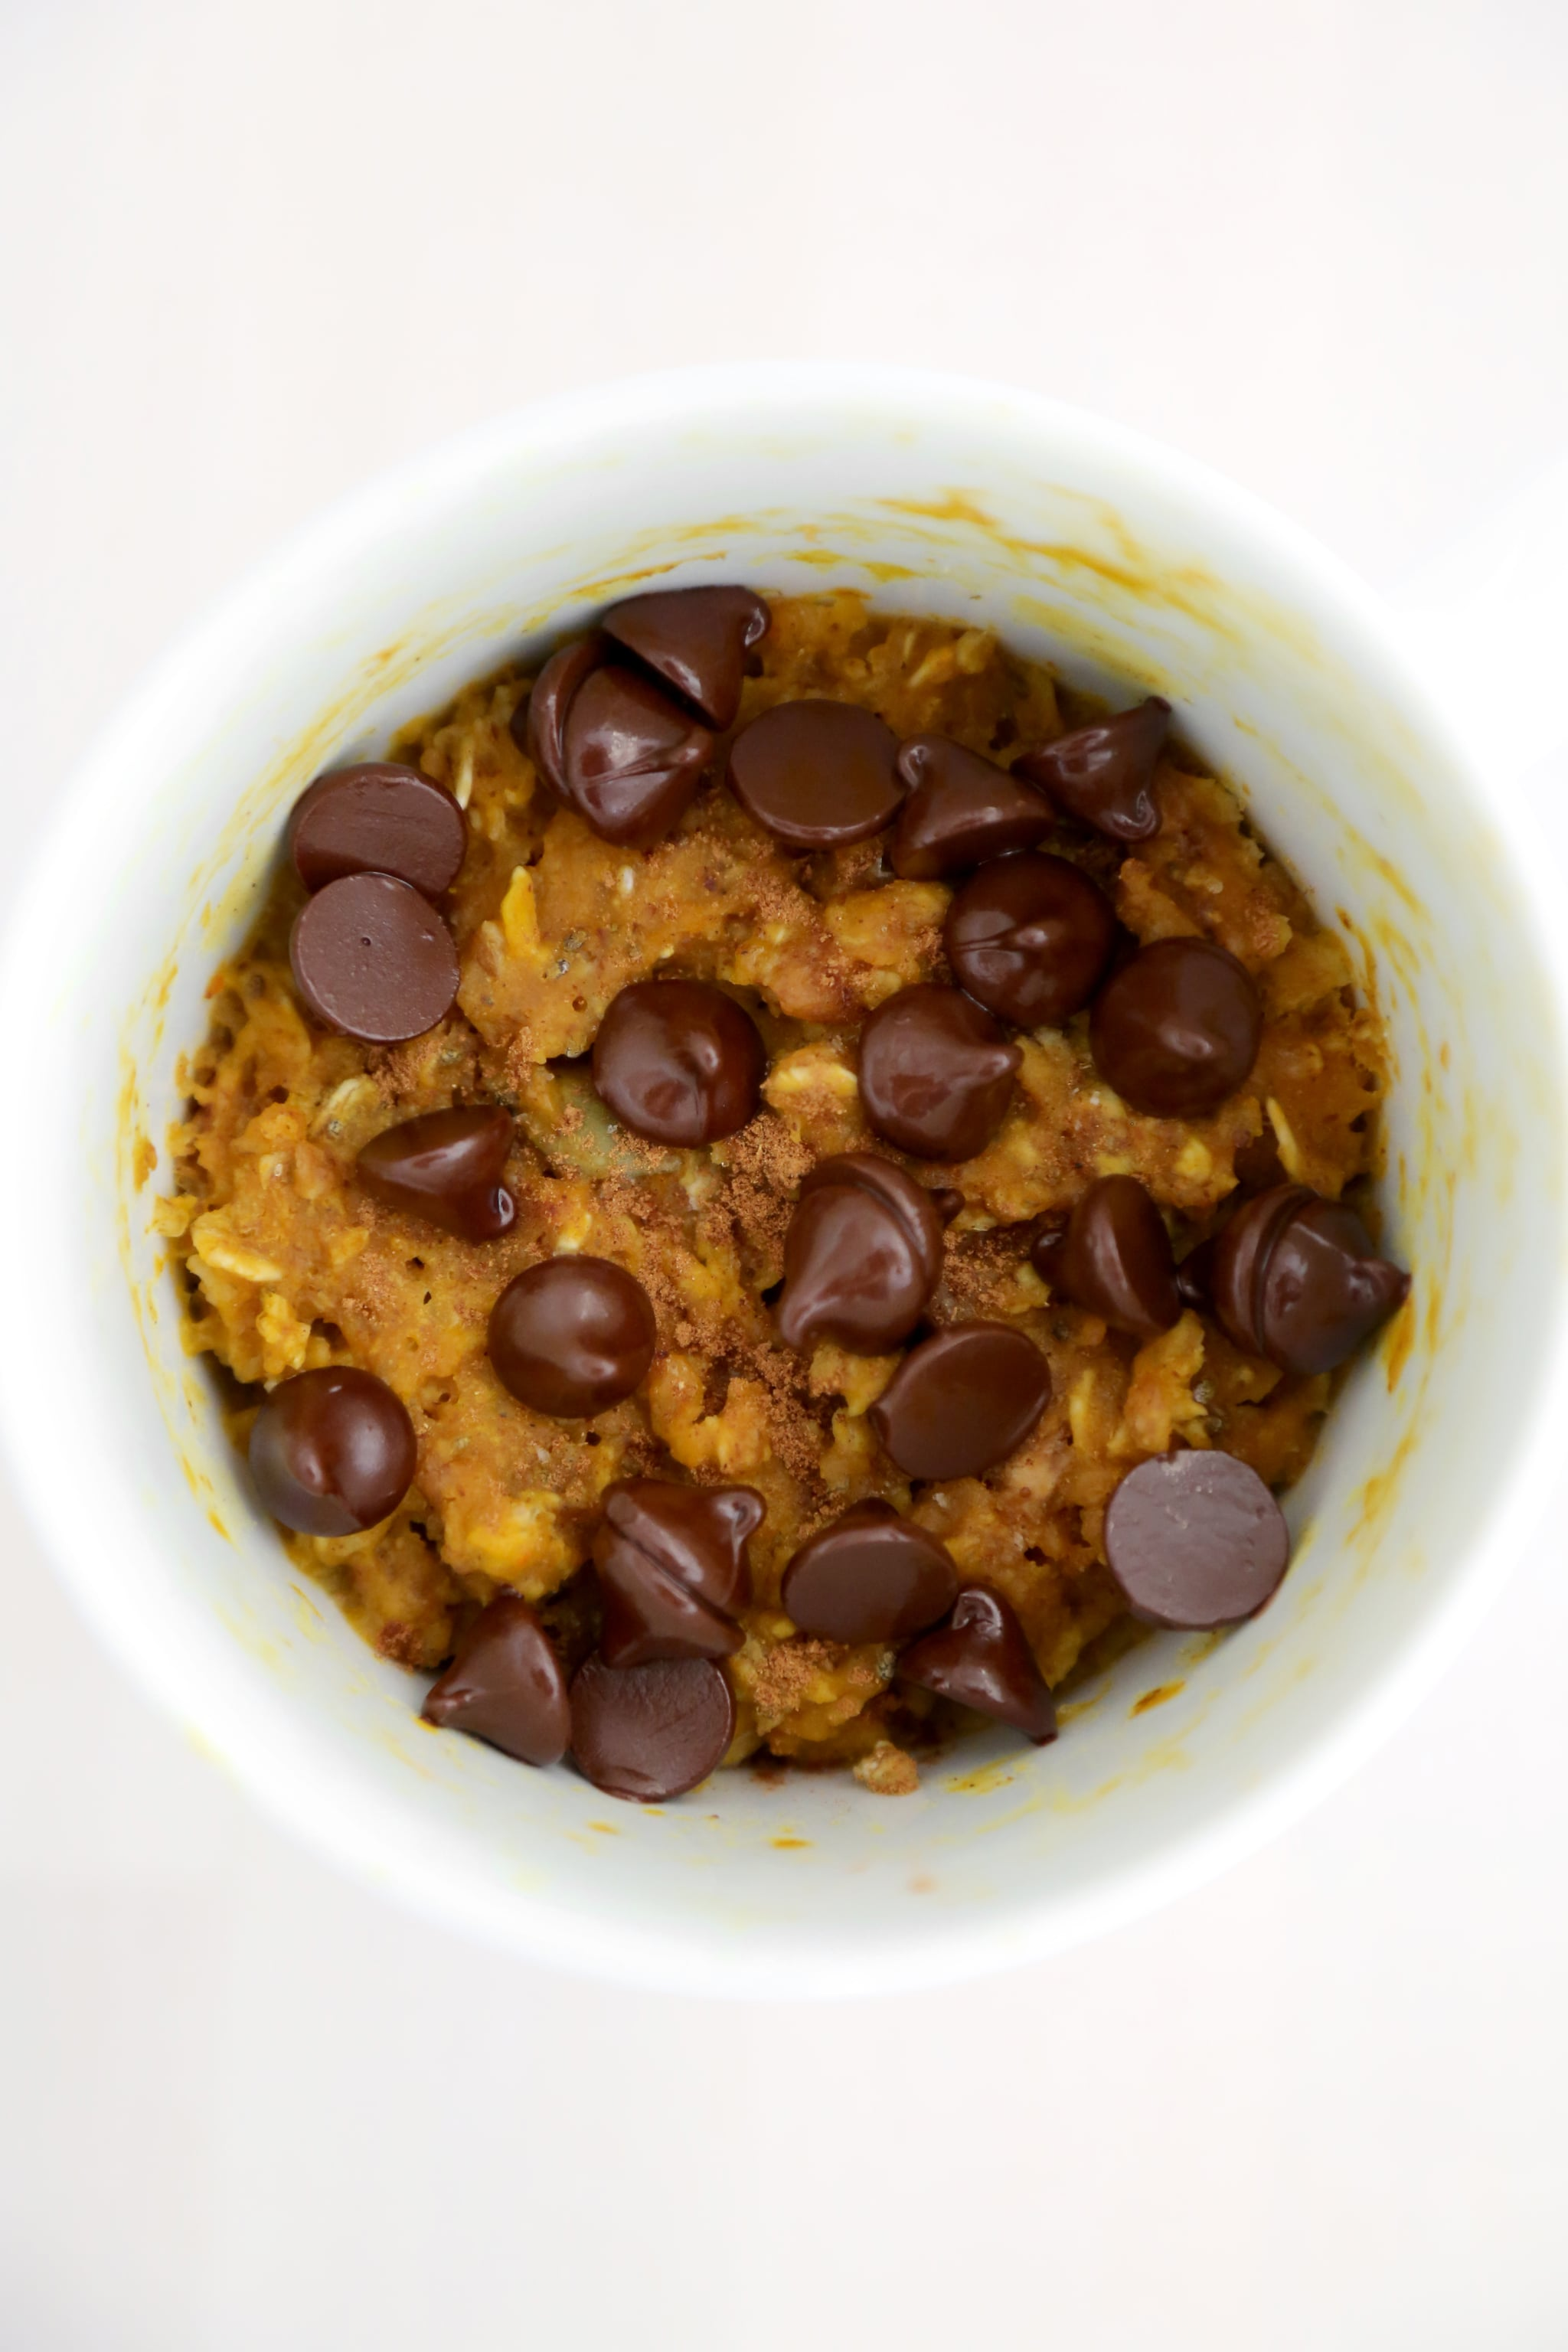 Microwaveable Mug Pumpkin Spice Oatmeal | POPSUGAR Food